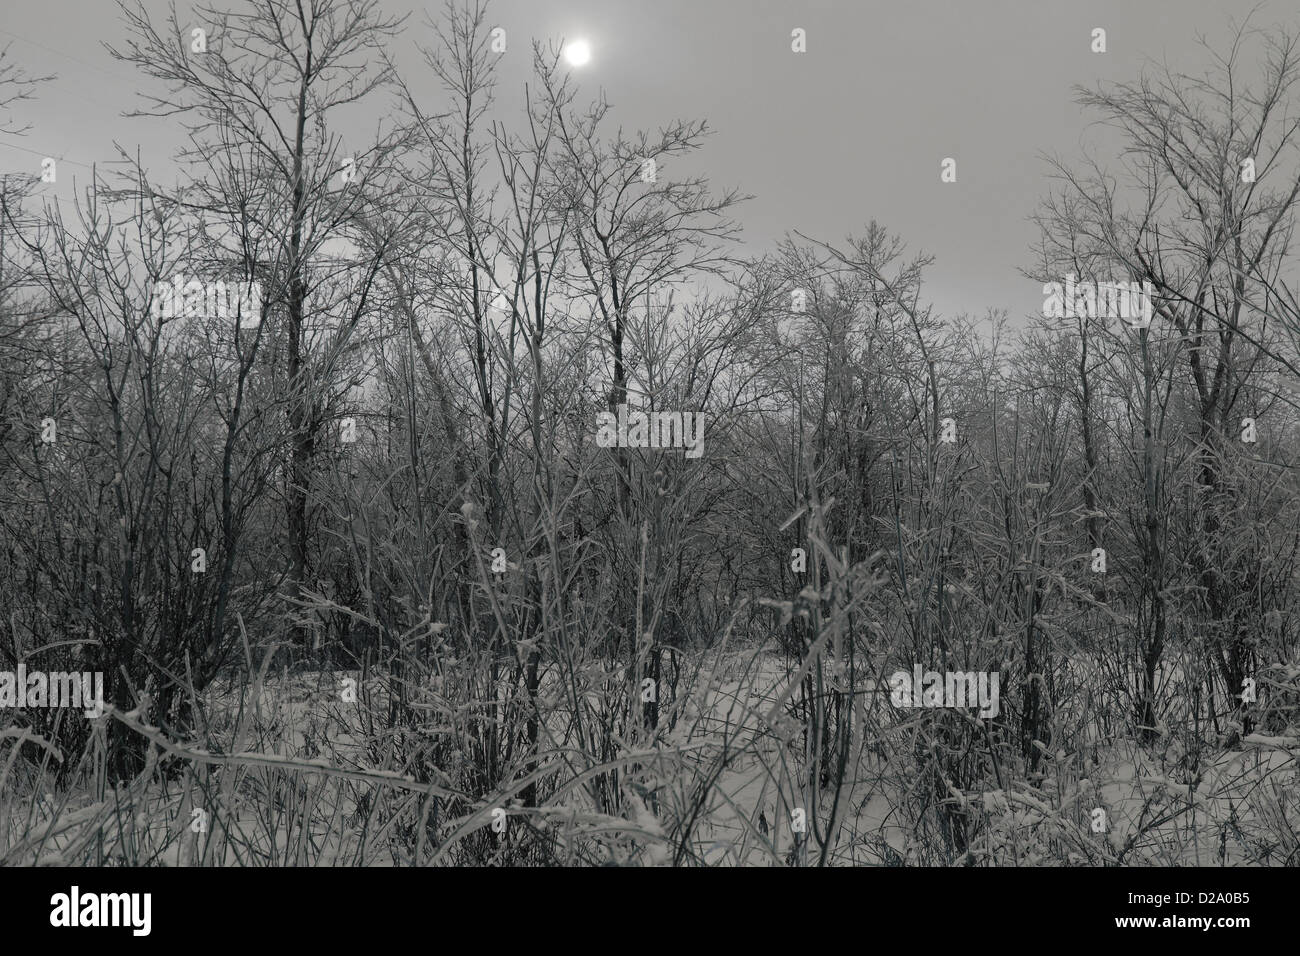 frosty forest and smog in winter. A gray day. - Stock Image